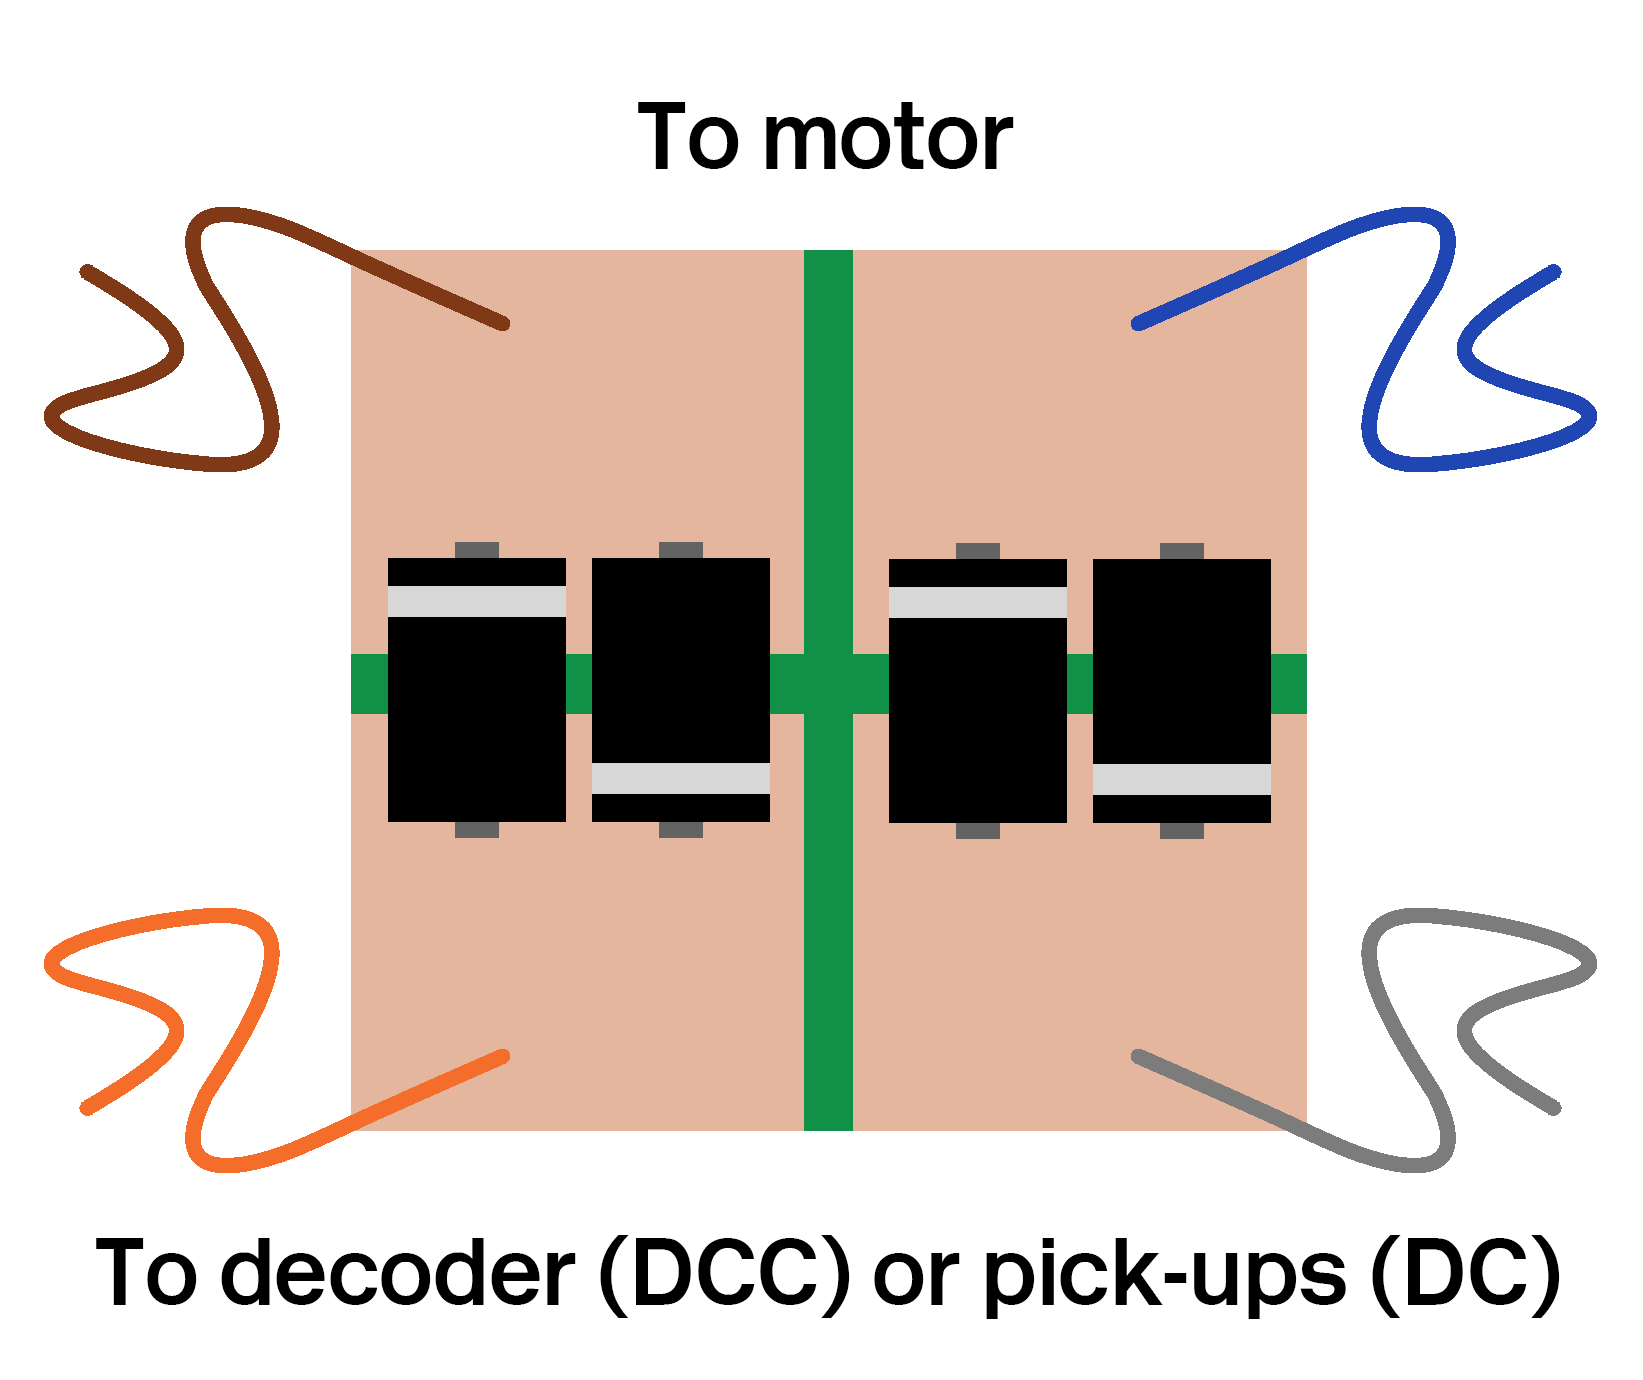 Bachmann Decoder Wiring Diagram 8 Pin Library Diode Voltage Dropper Circuit For Lima Motor Conversion